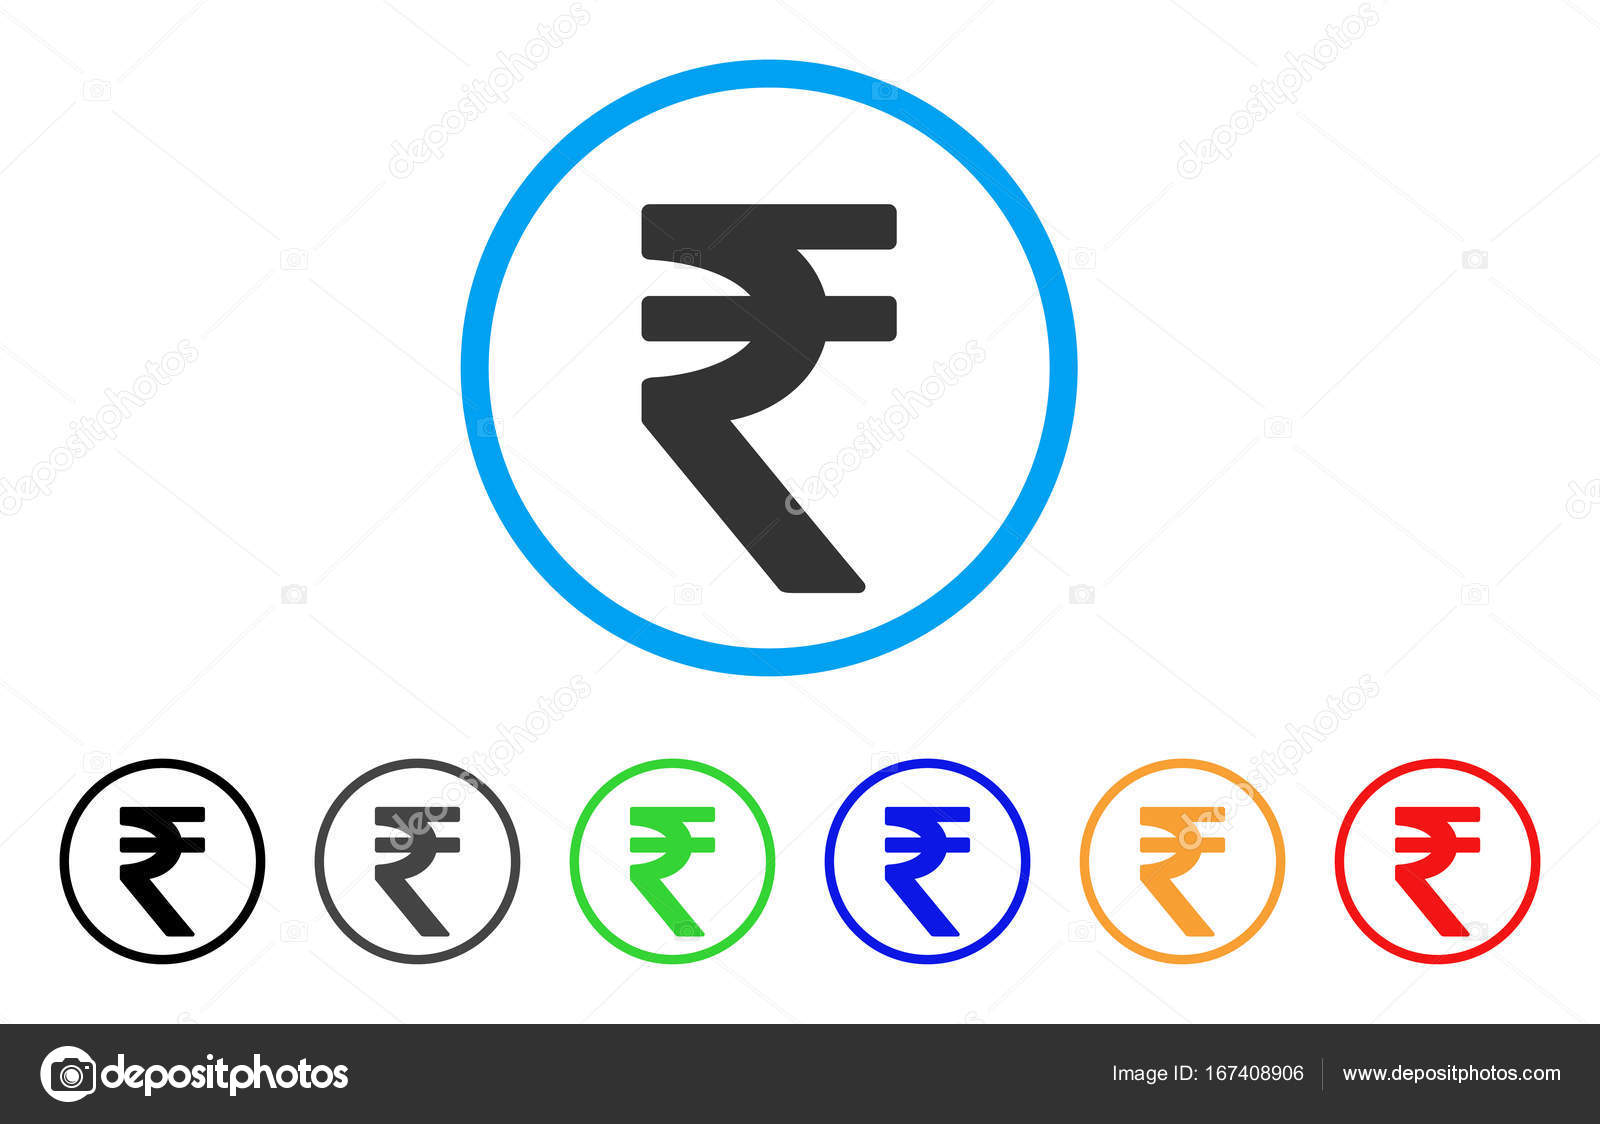 Indian rupee vector icon stock vector ahasoft 167408906 indian rupee icon vector illustration style is a flat iconic indian rupee symbol with black grey green blue red orange color versions biocorpaavc Choice Image